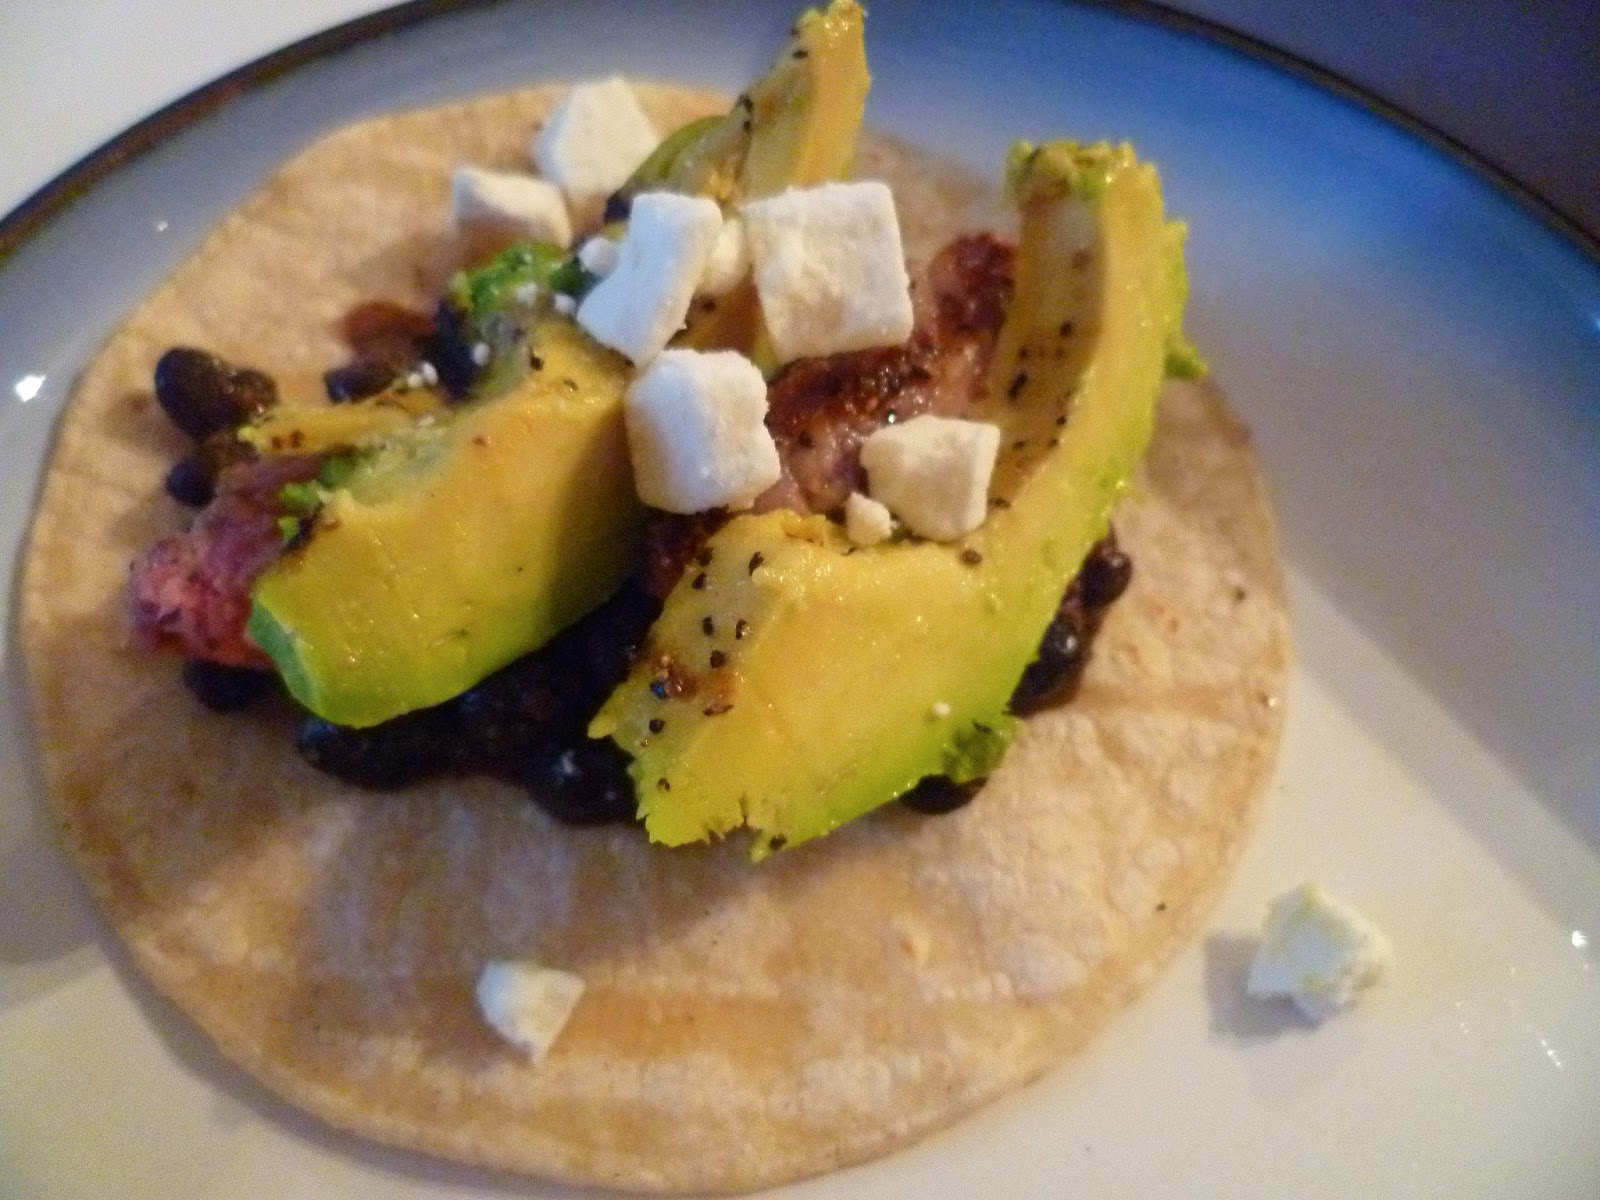 Assemble tacos; place spoonful of spiced black beans in tortilla, add ...